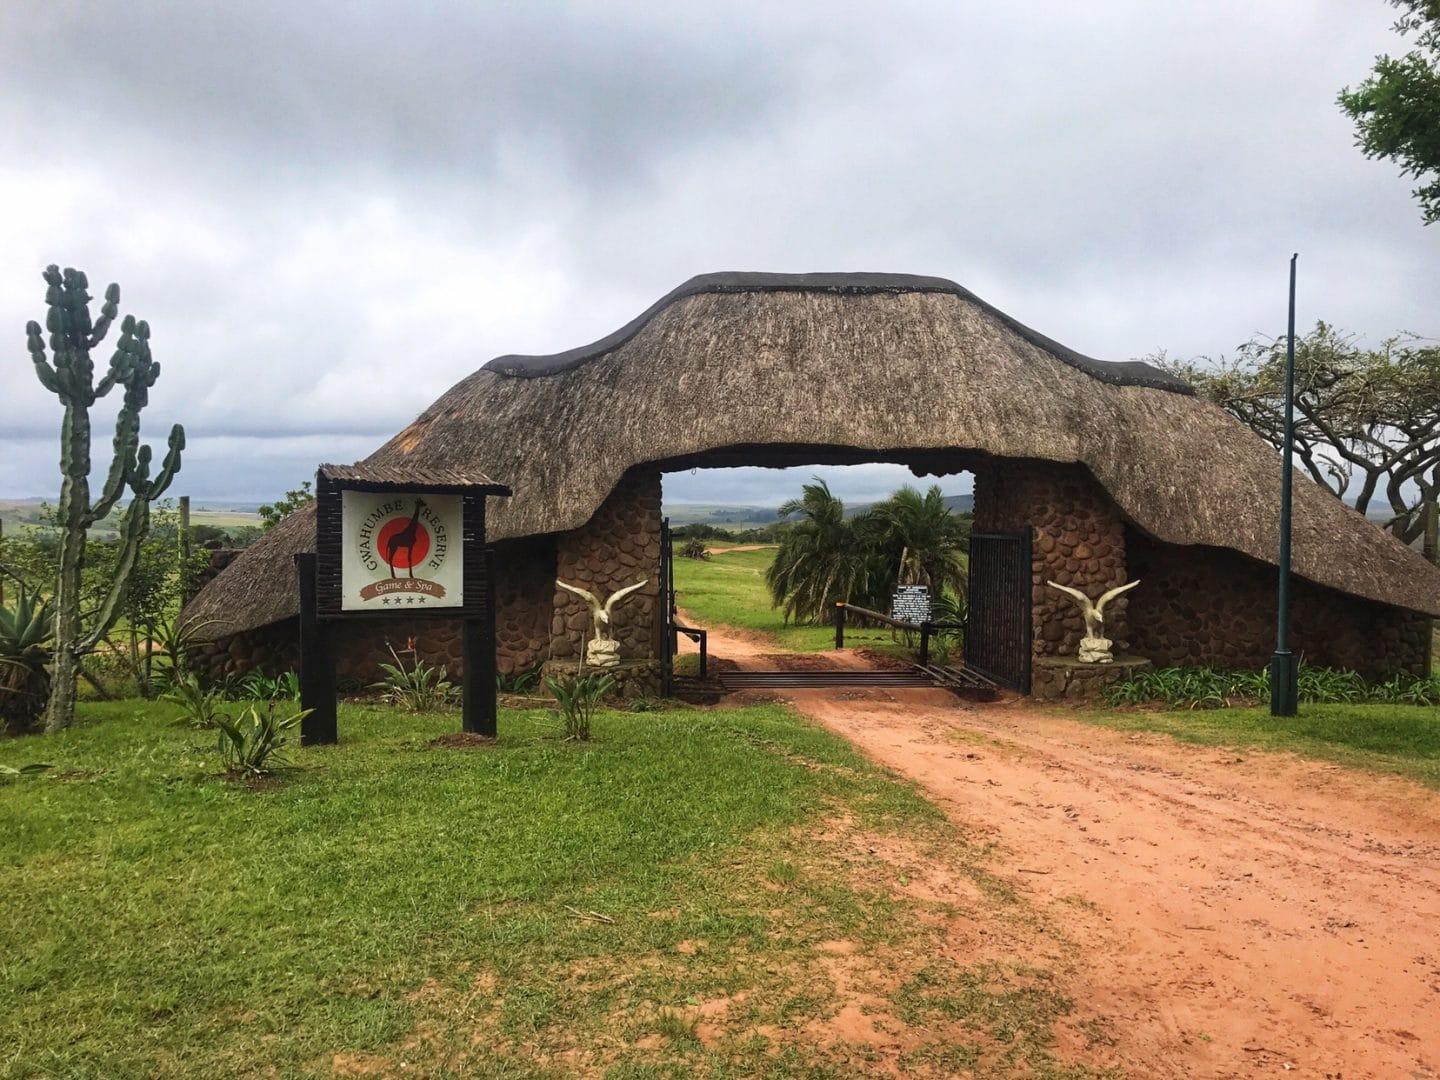 Visiting Gwahumbe Game Reserve and Spa in Kwa-Zulu Natal, South Africa